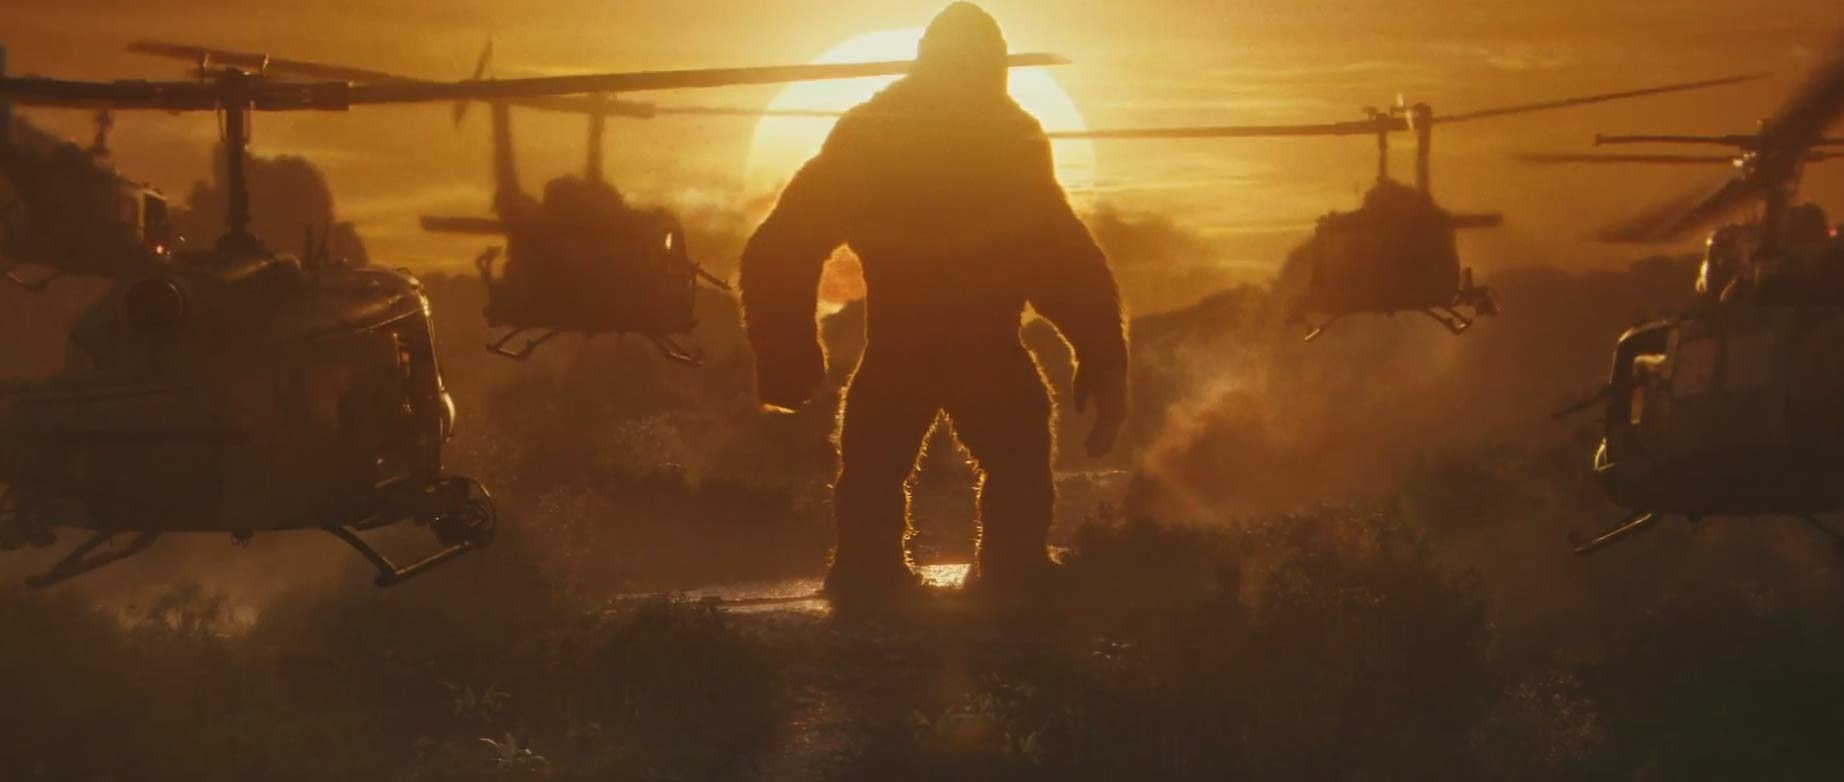 Kong Skull Island Final Trailer Screen Shot 1